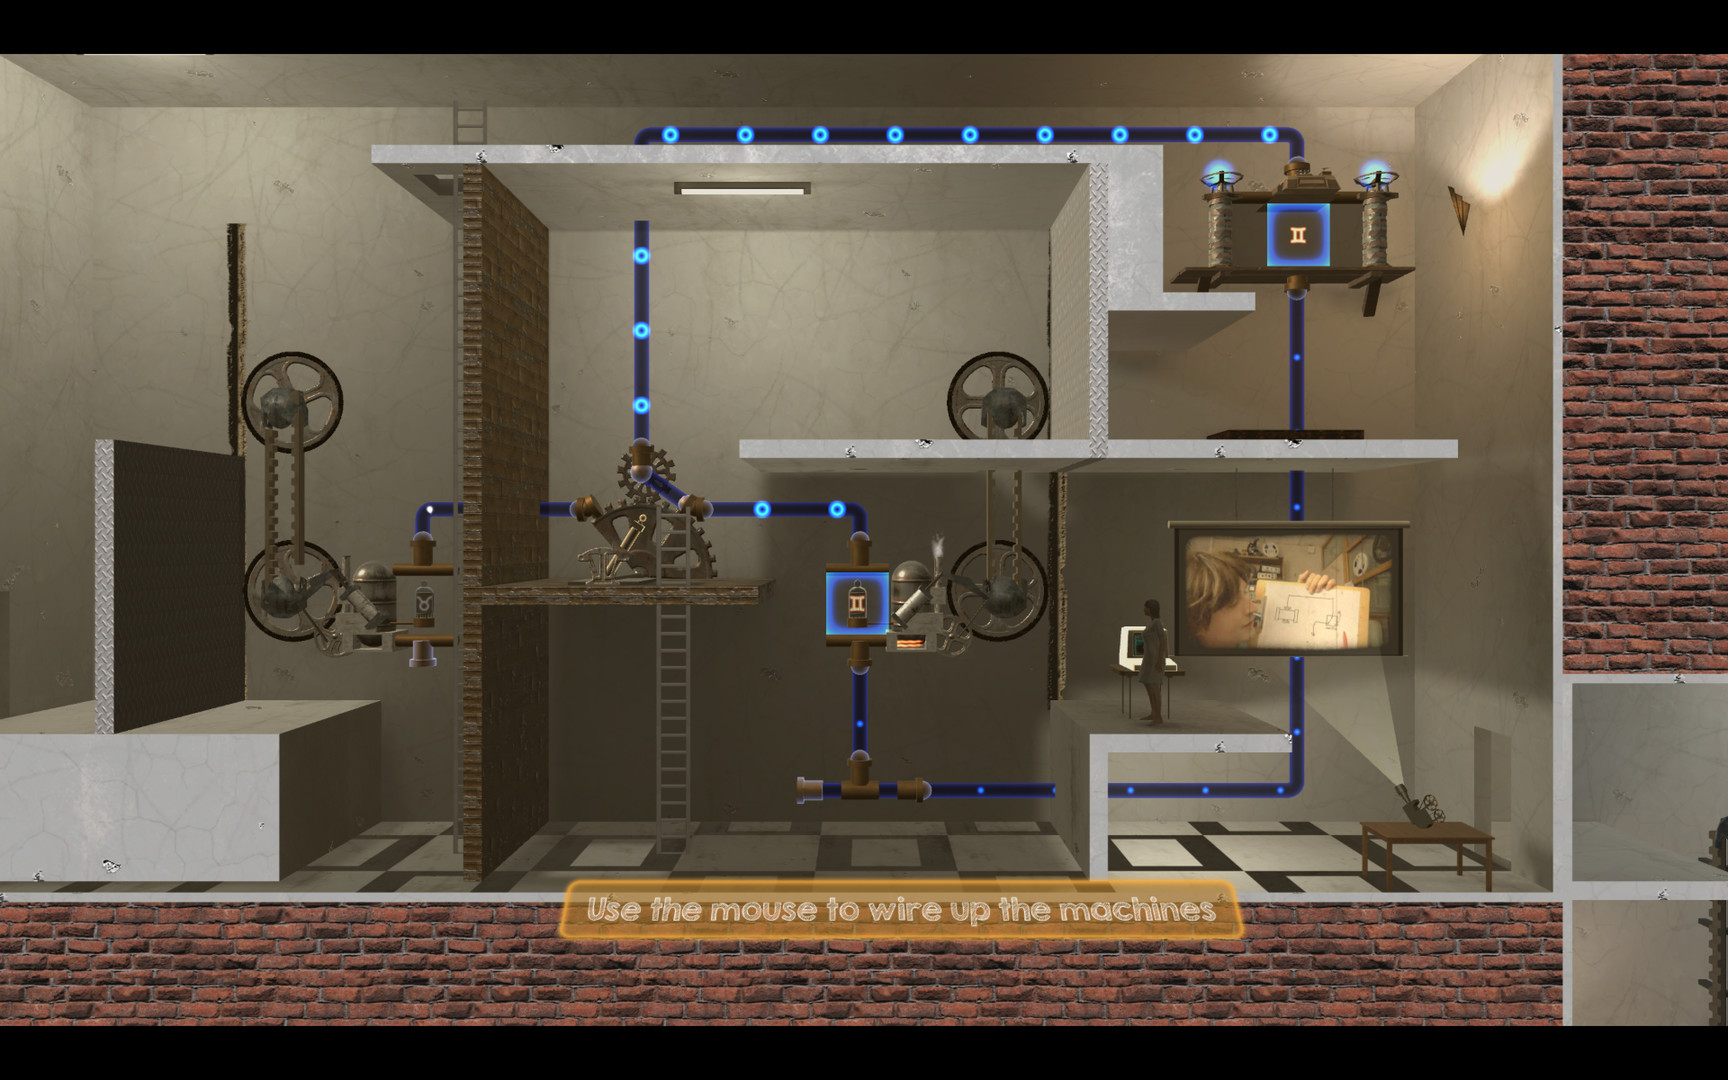 Wired On Steam Electric Circuit App For Windows In The Store